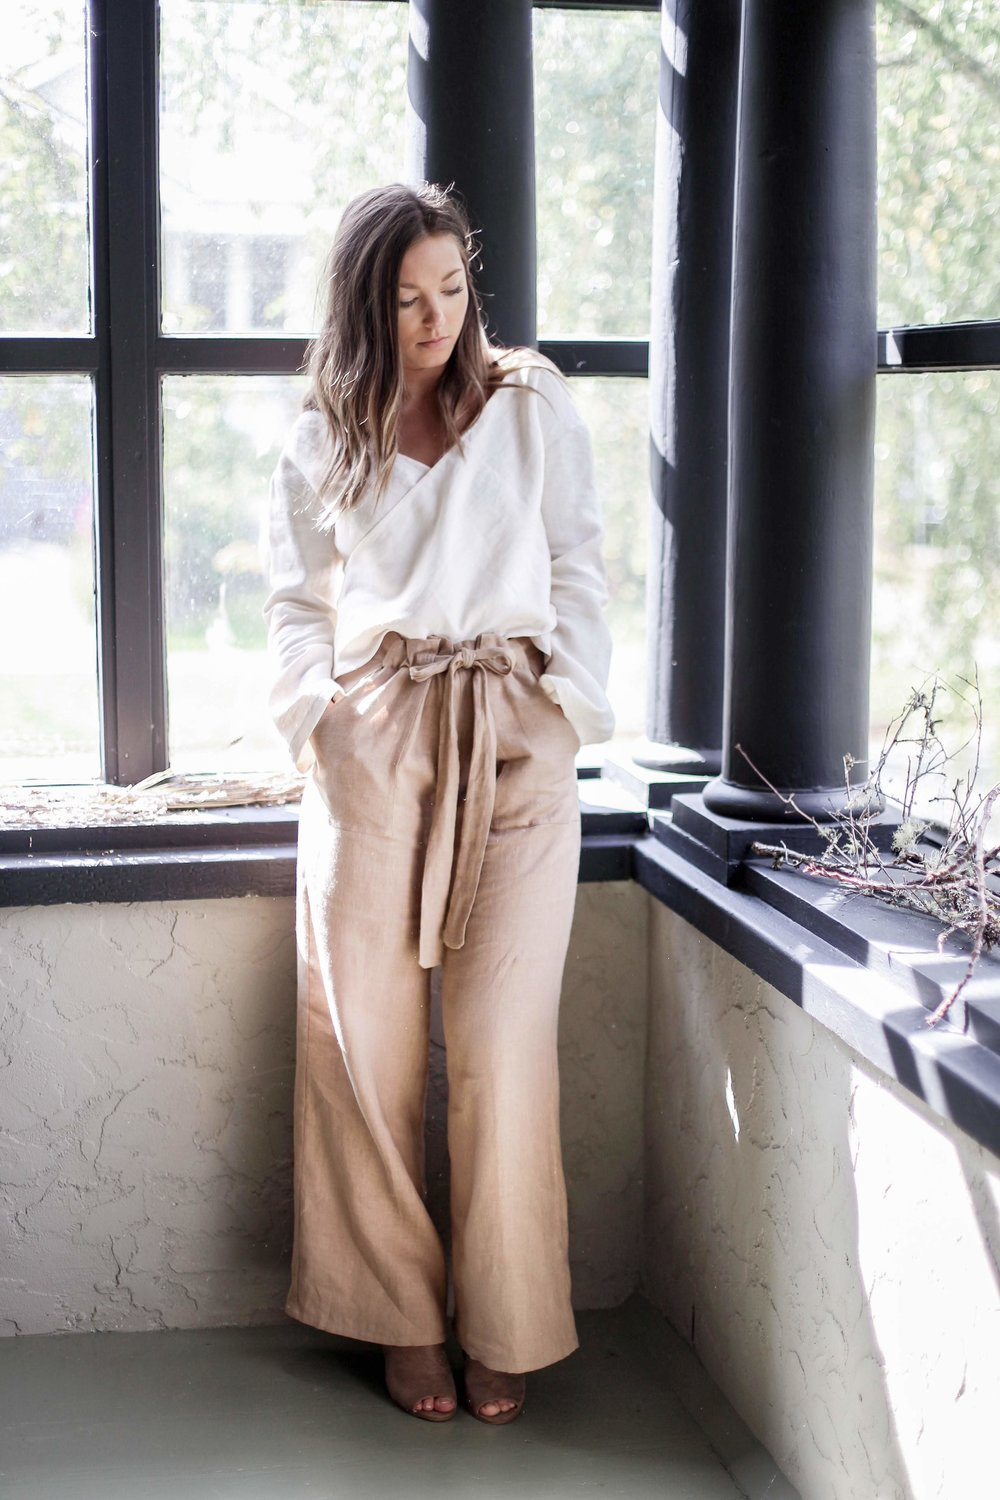 nomi-designs_maya-pants_camel-colored_natural-linen-pants-with-pockets-and-tie_styled-with-white-linen-top.jpg